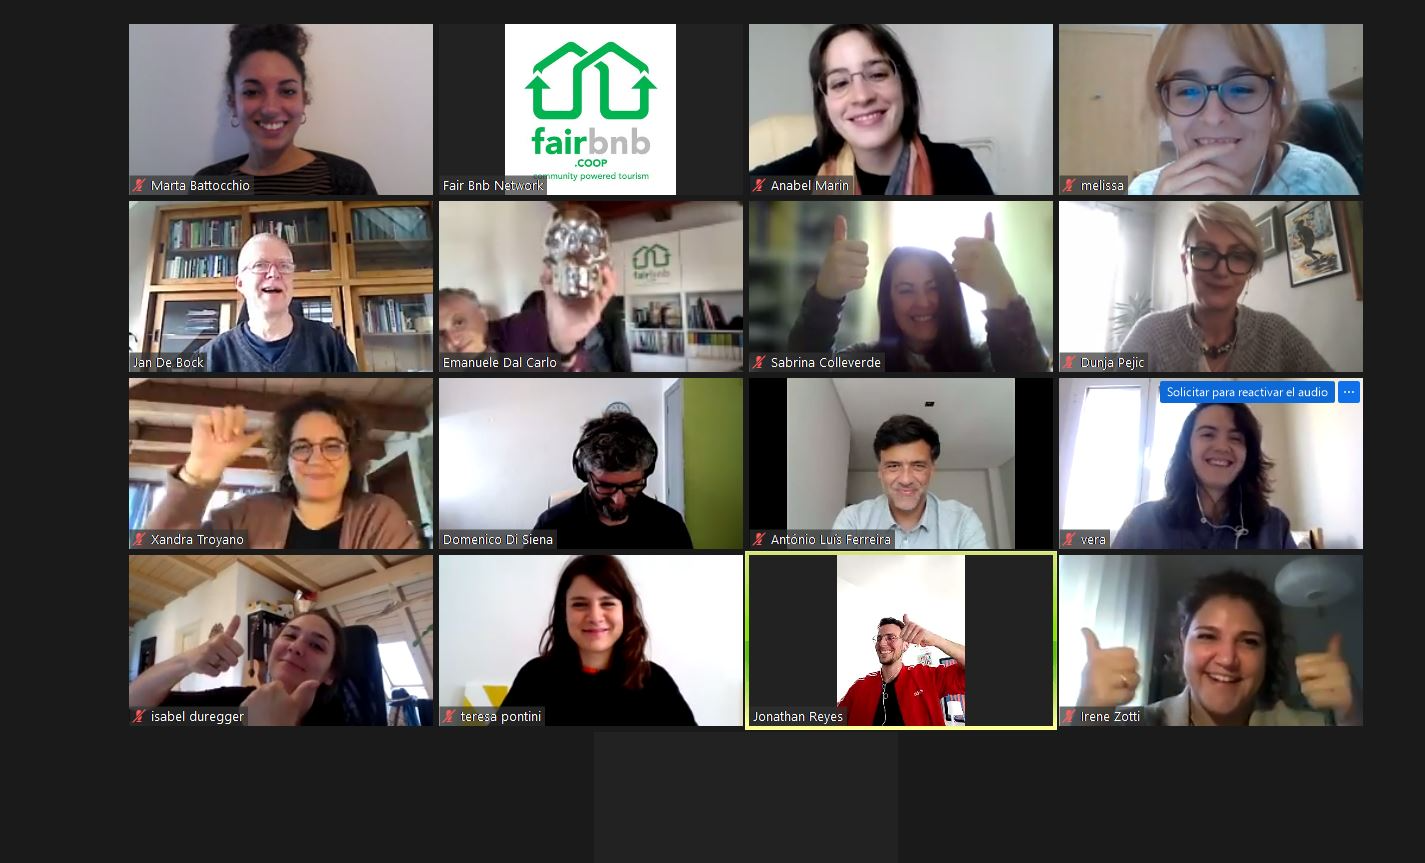 FairLab challenges: addressing coop Values, sustainability, and hosts criteria During our weekly meeting, Adolfo presented us a general map based on the actual organization of Fairbnb.coop with the deepening on the development of a tool to assess our impact, as well as the translation of our values into concrete practices and operative guidelines of sustainability. The main goal now is to prepare a road map that is going to be part of the workshop for the all Fairbnb team meeting in July in Bologna, in order to promote our values and write a common manifesto of the cooperative.